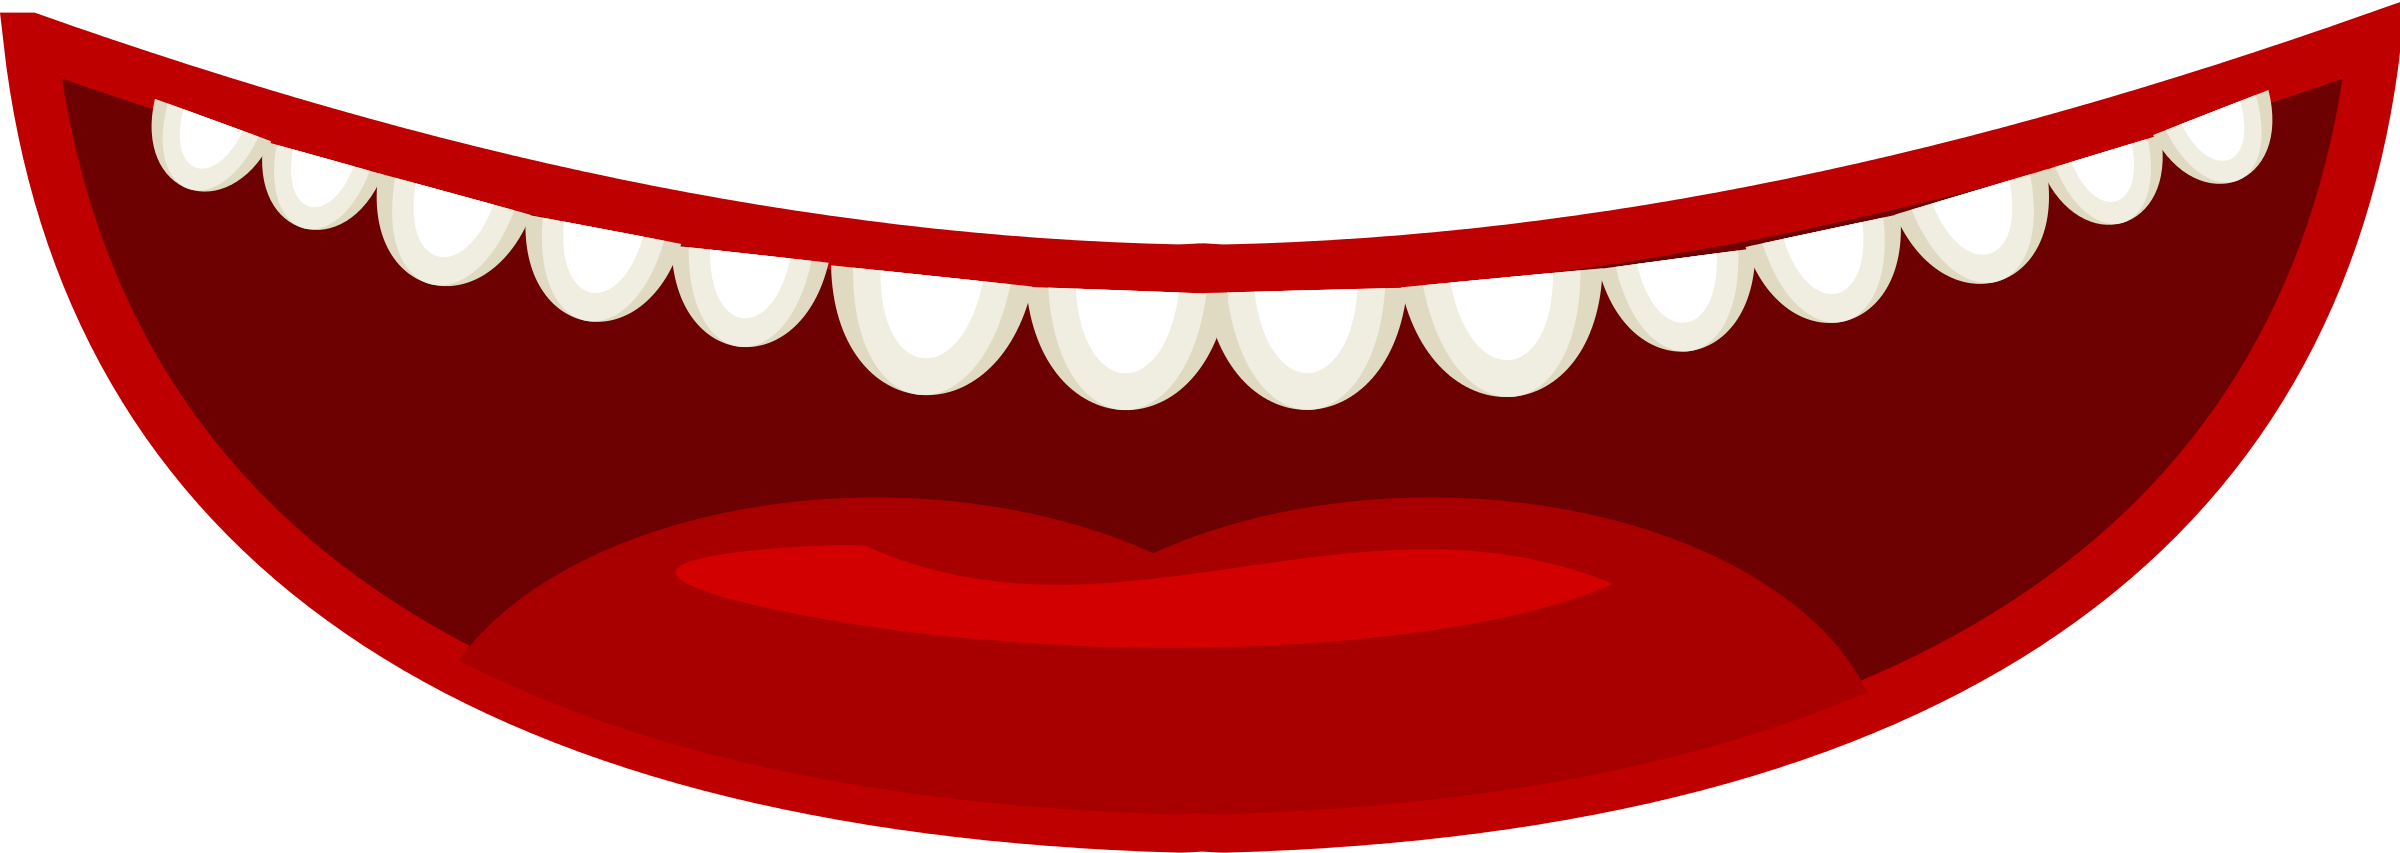 Monster clipart mouth open #15